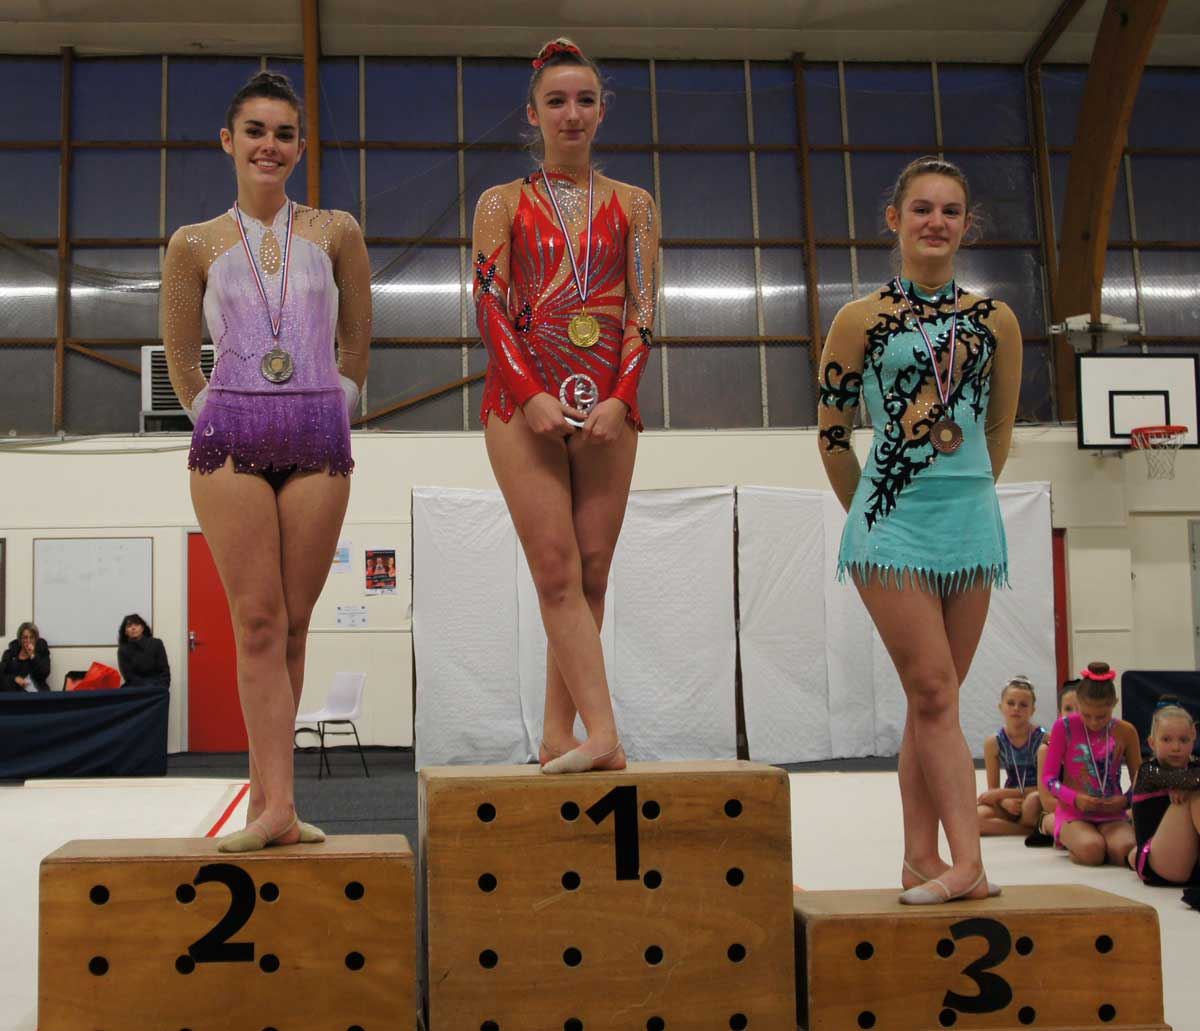 INDIV_District2015_Podium_Honn15-16.jpg